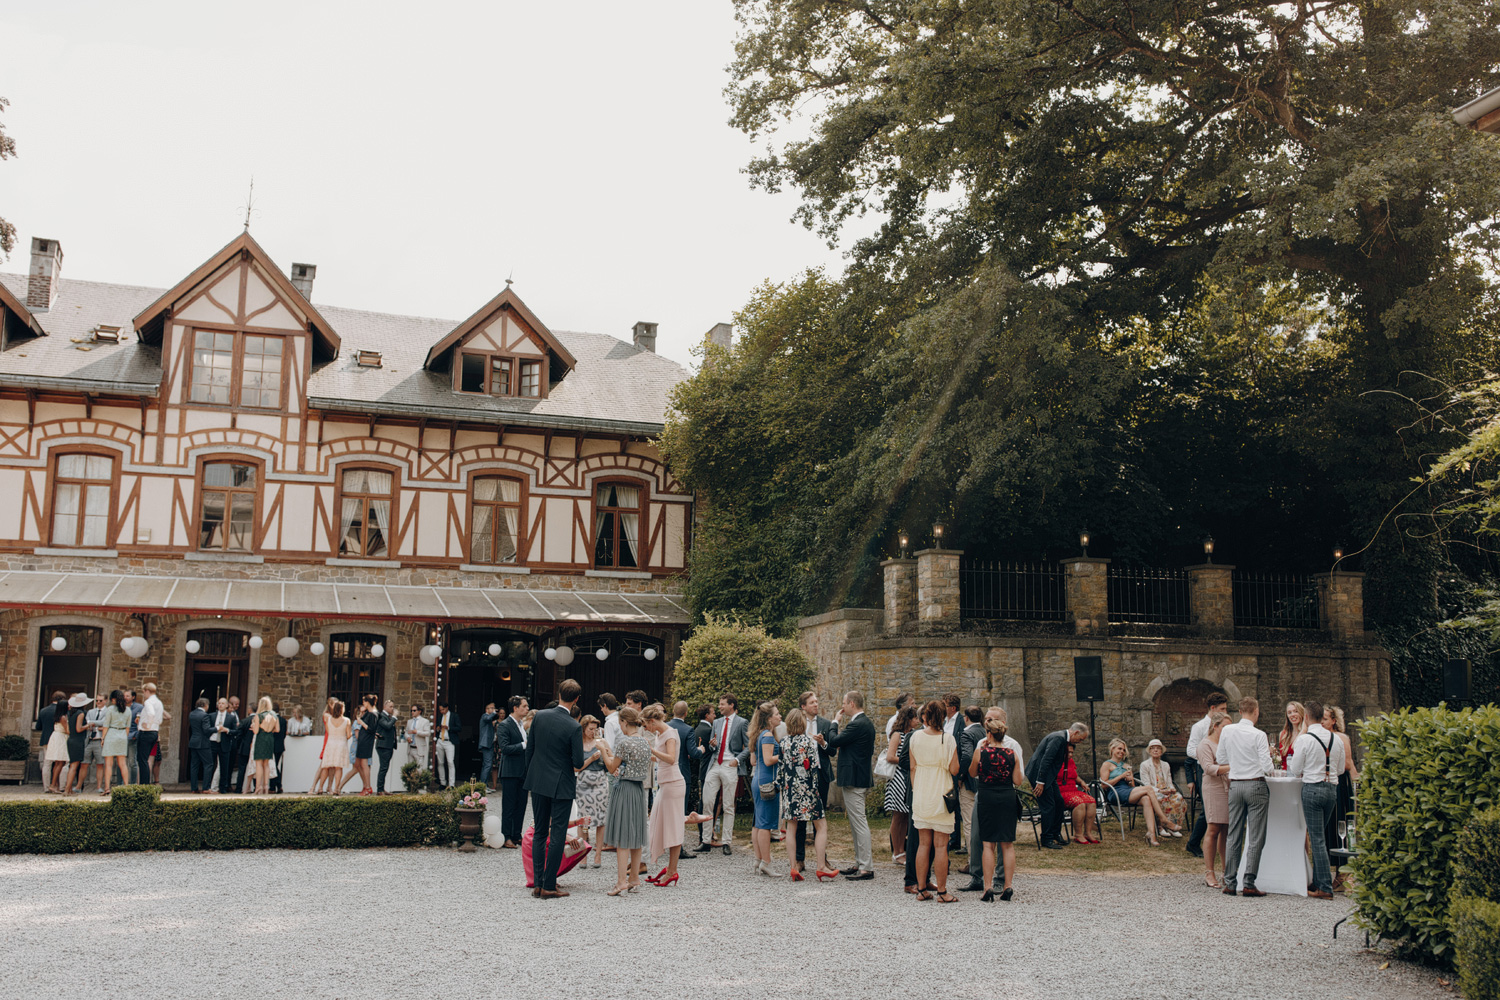 People socializing at Chateau de Presseux